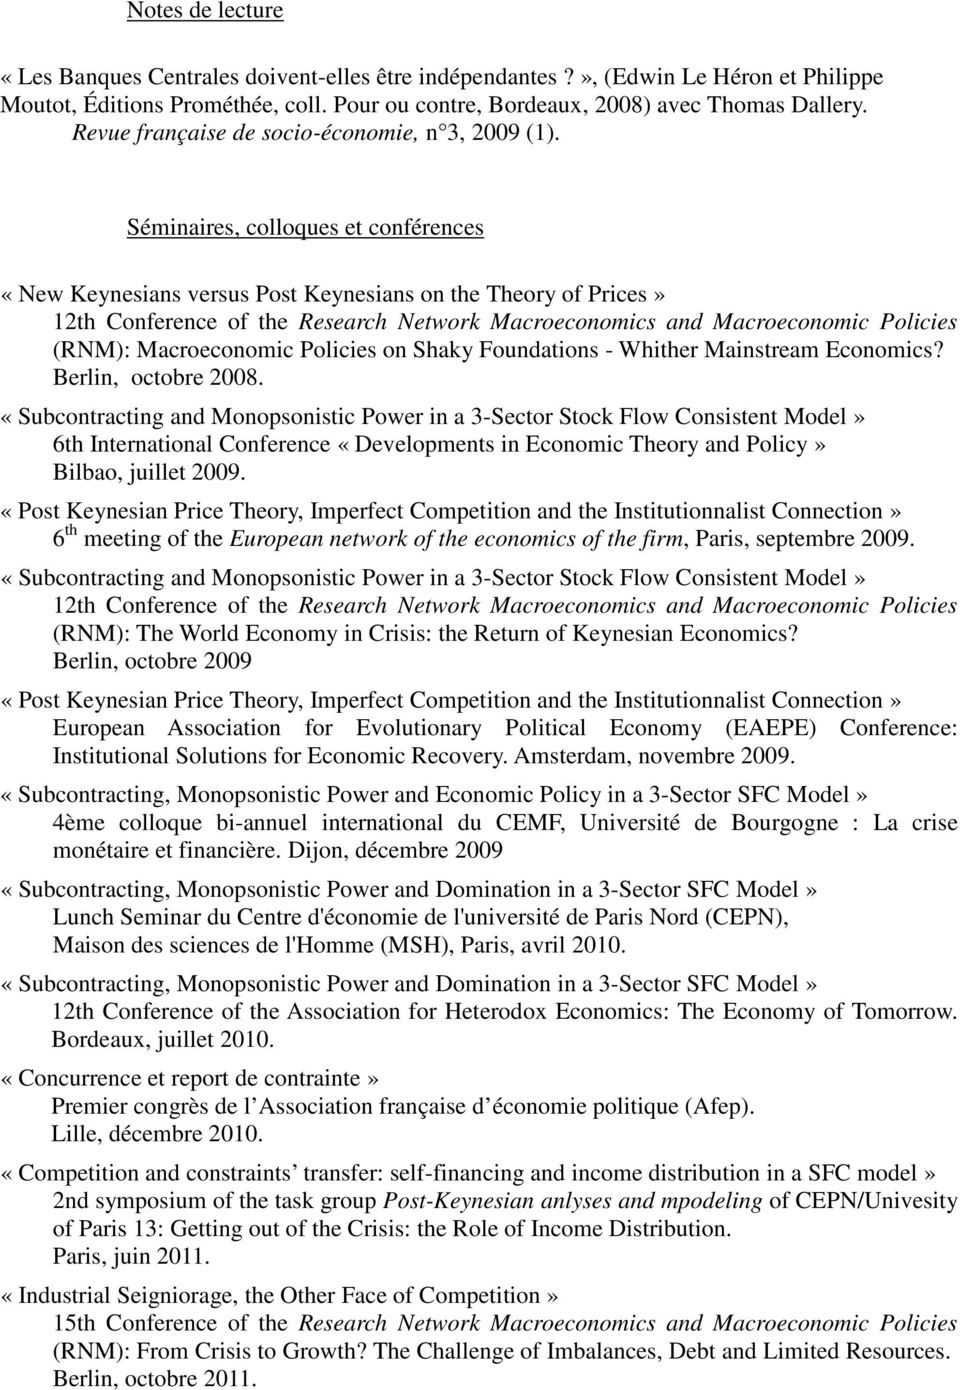 Séminaires, colloques et conférences «New Keynesians versus Post Keynesians on the Theory of Prices» 12th Conference of the Research Network Macroeconomics and Macroeconomic Policies (RNM):